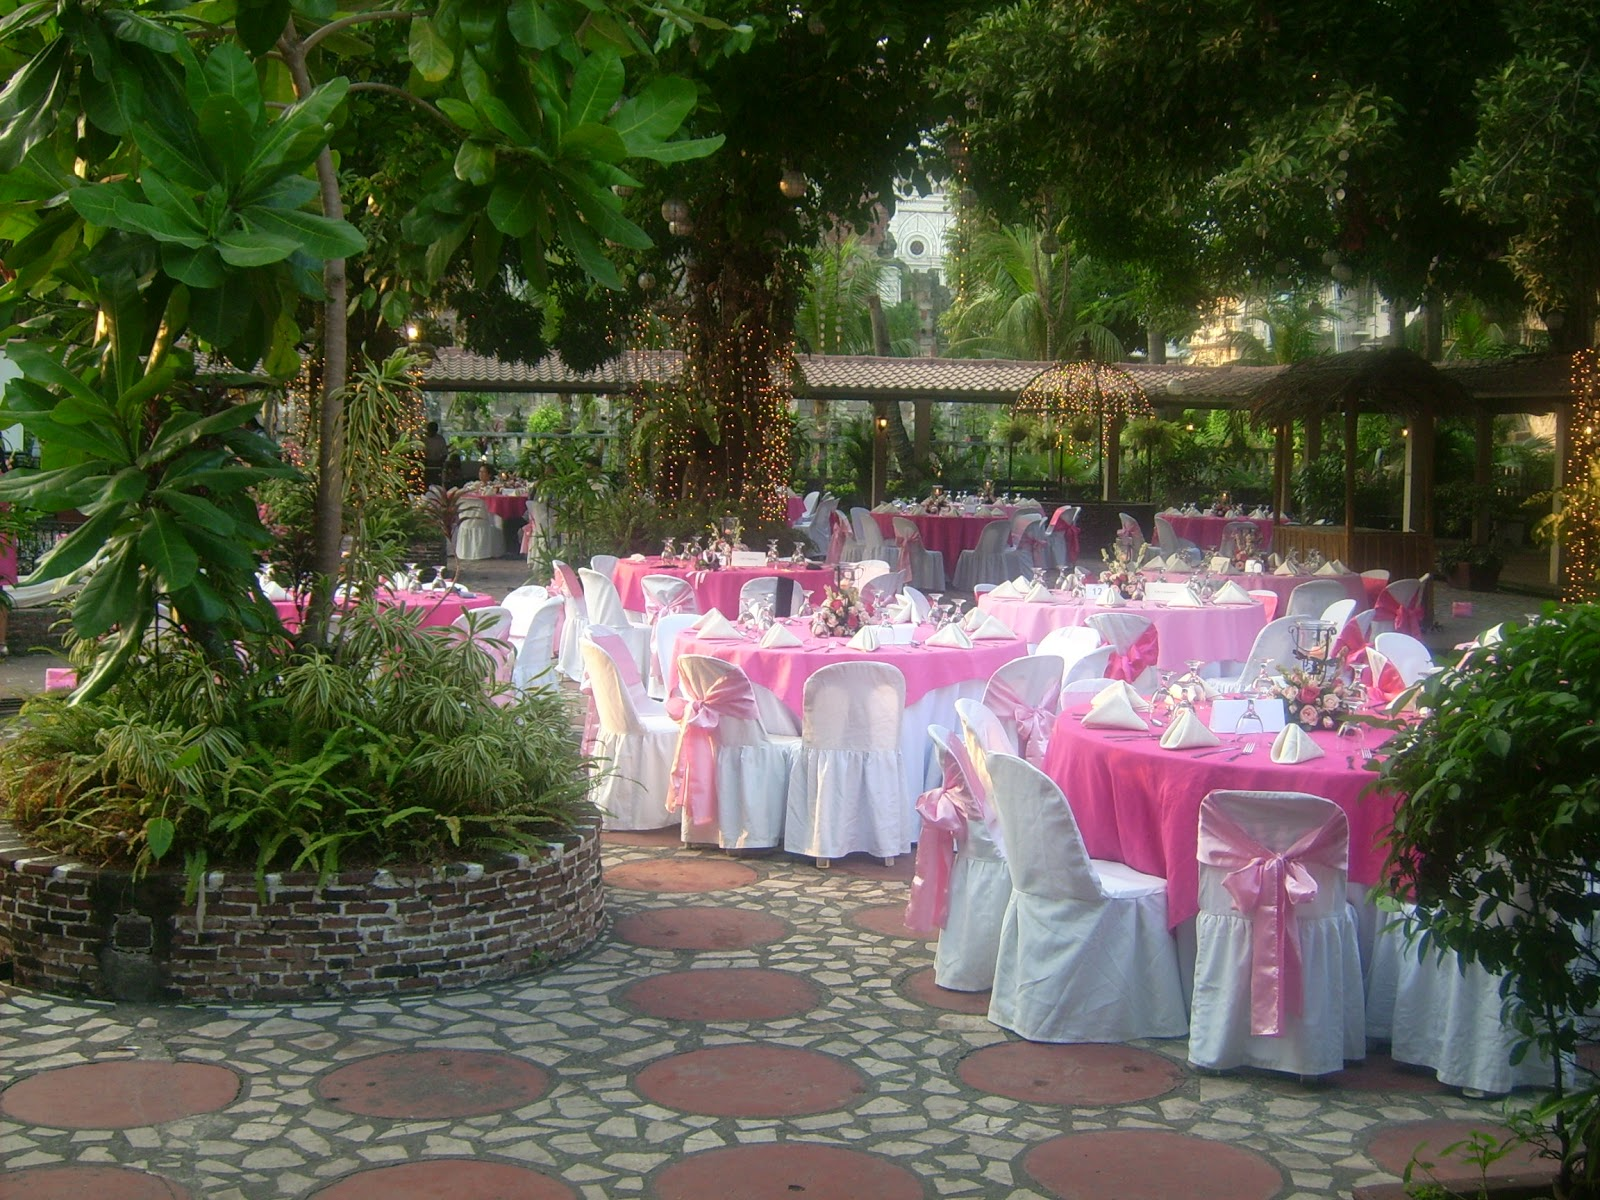 Lq designs ideas for wedding receptions on a budget just blog - Garden wedding ideas decorations ...